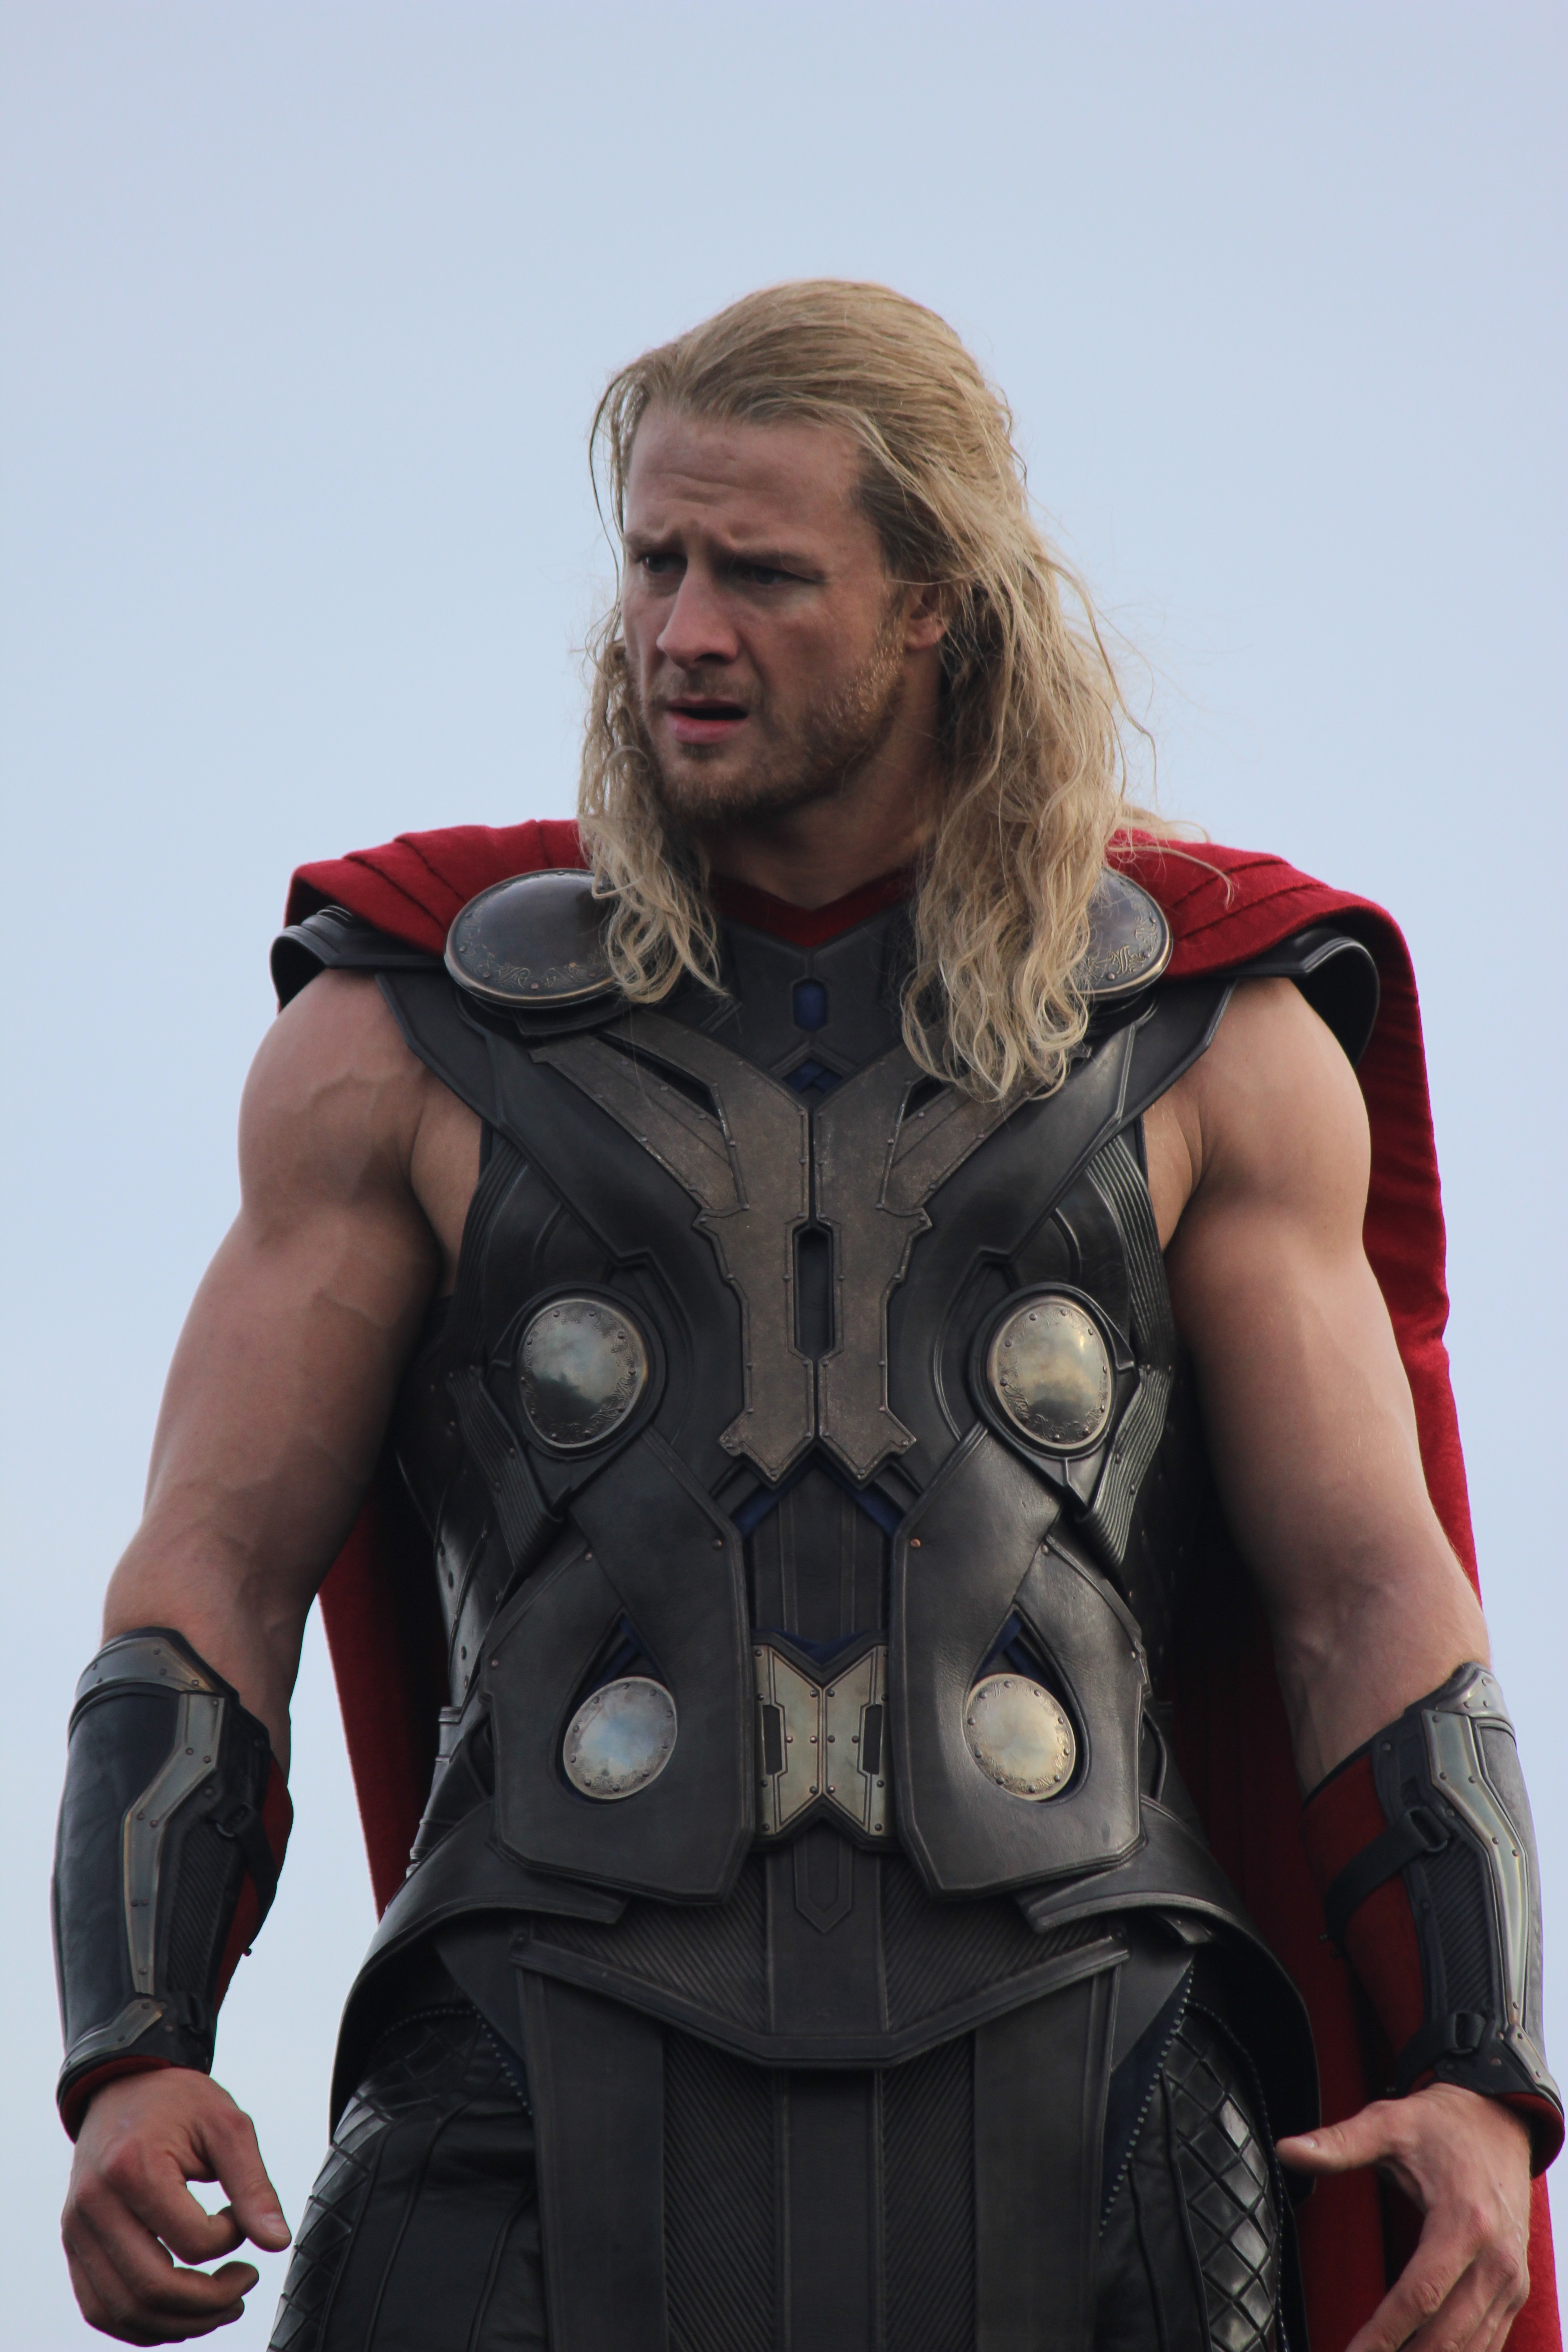 Bobby Holland Hanton as Thor in The Avengers: Age of Ultron